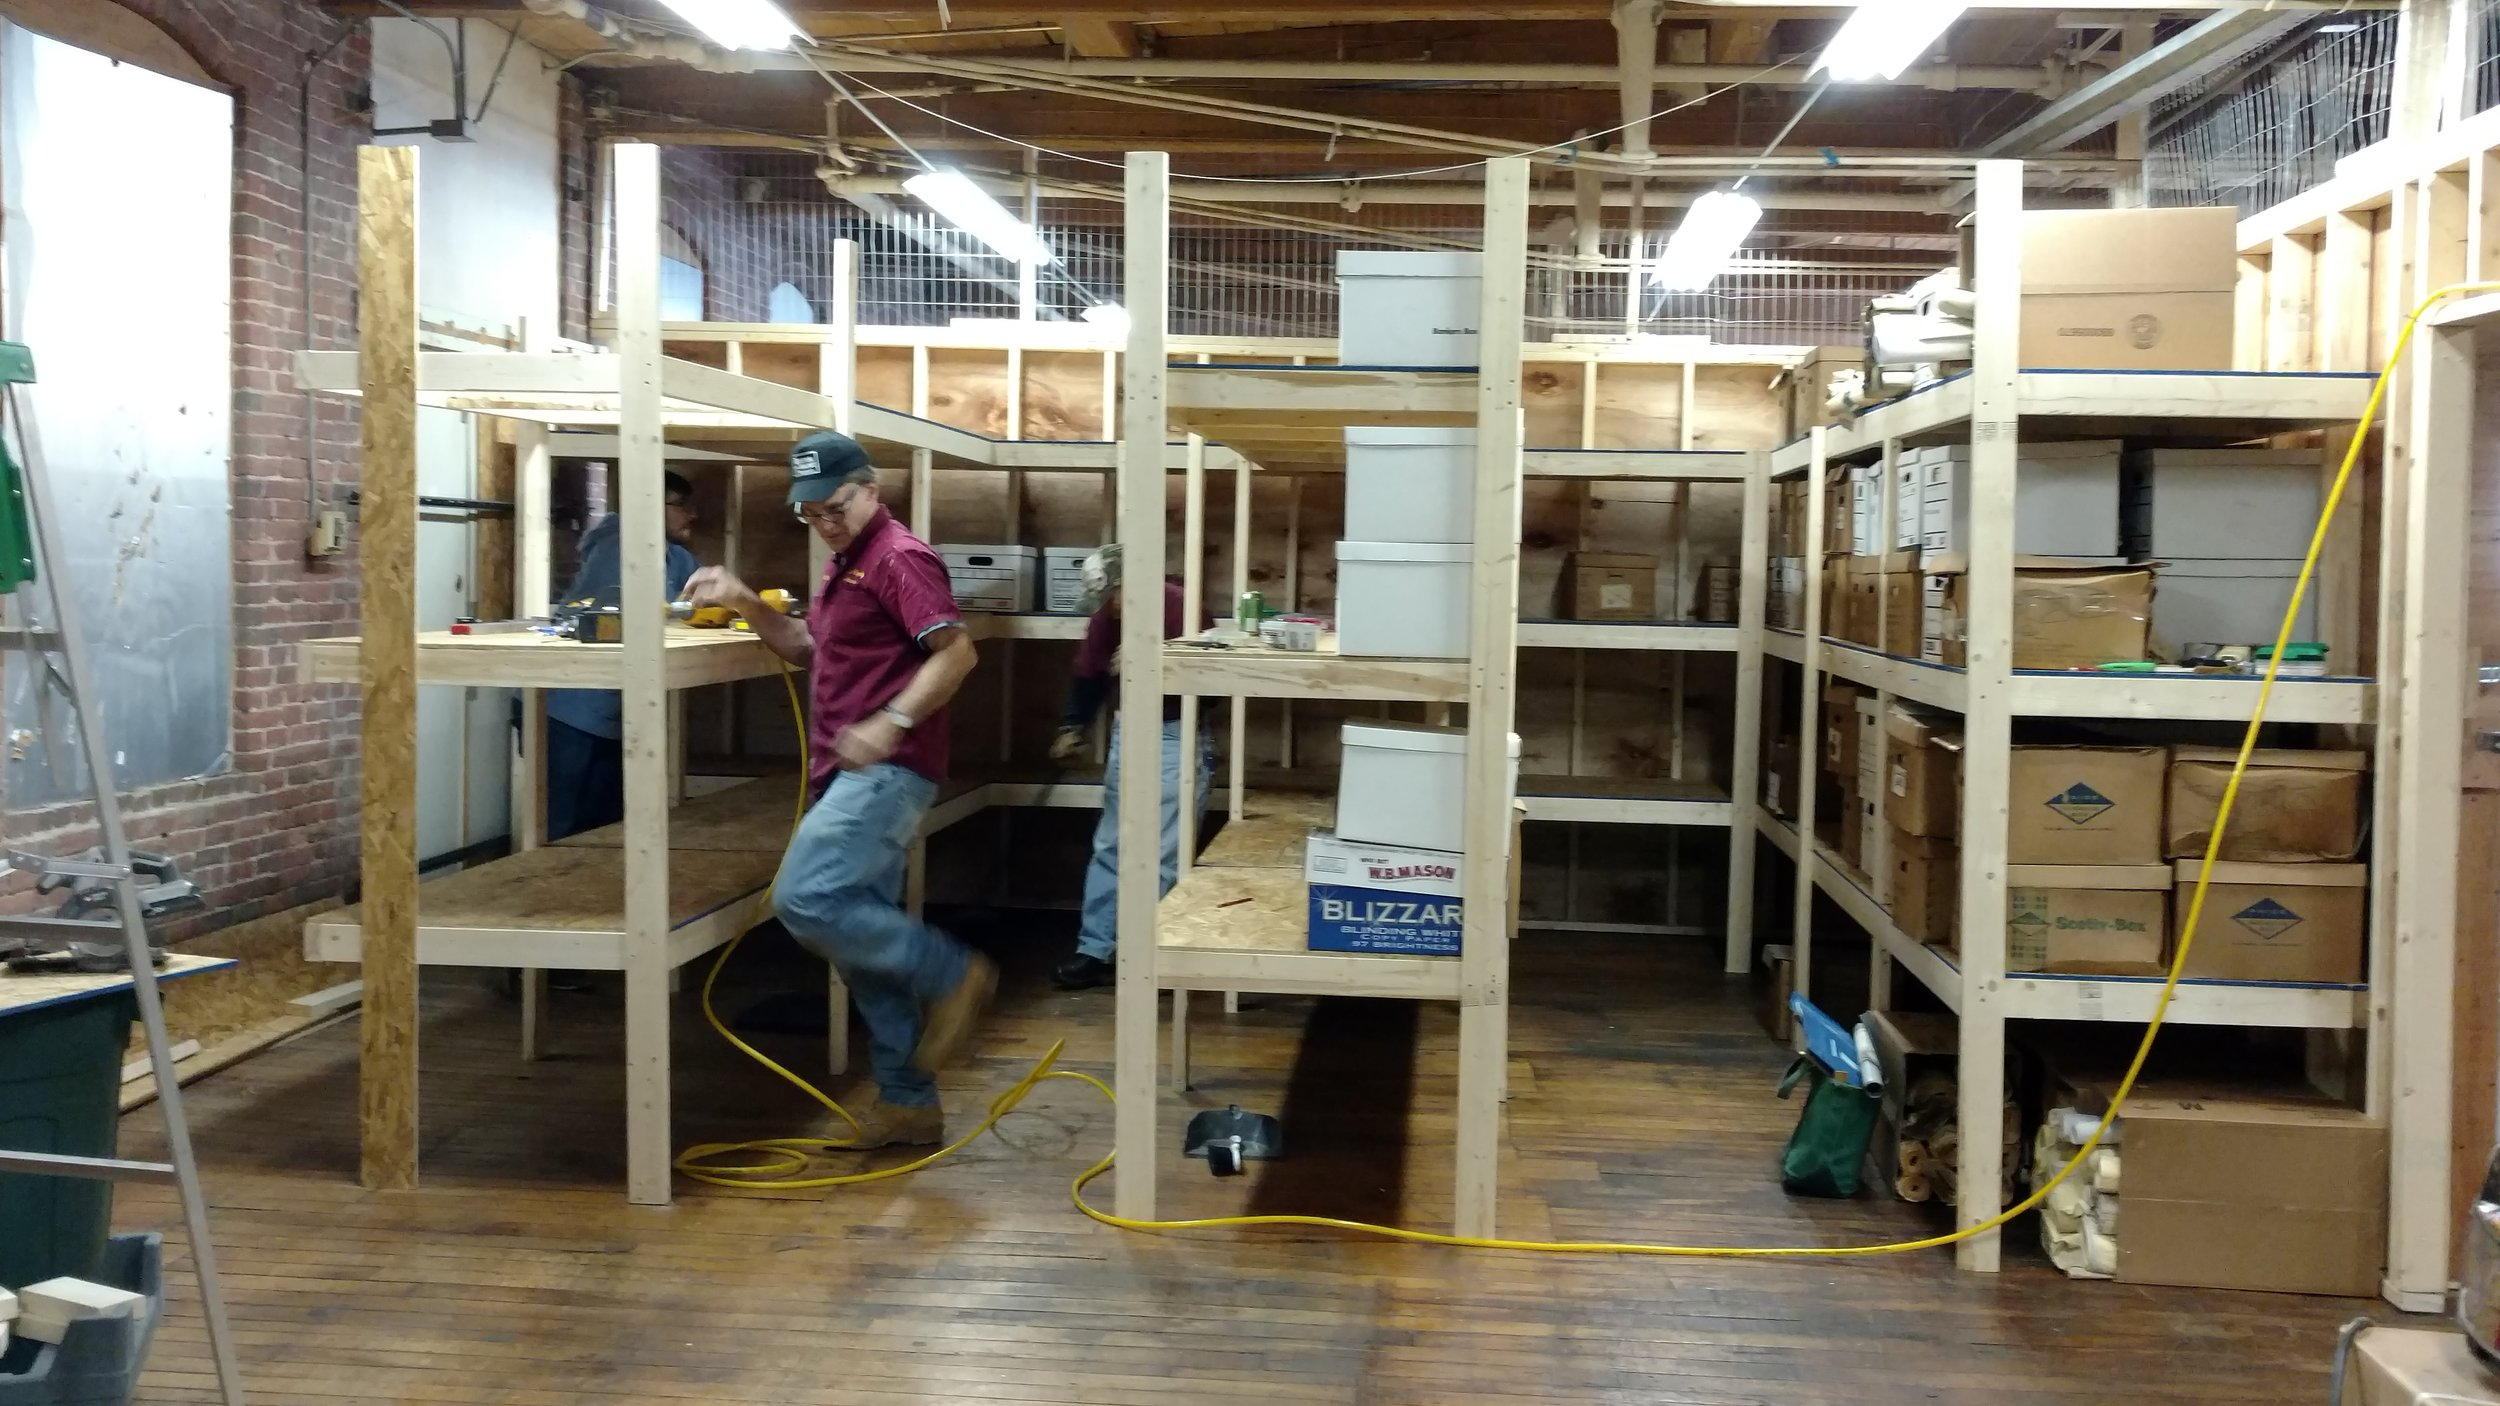 March 20, 2018. Jim Nigzus builds additional shelving. Many boxes have already been moved into the new space by Jimmy Nigzus, Rick Kfoury, Richard Nichols, and Tim Hairston. Staff photo